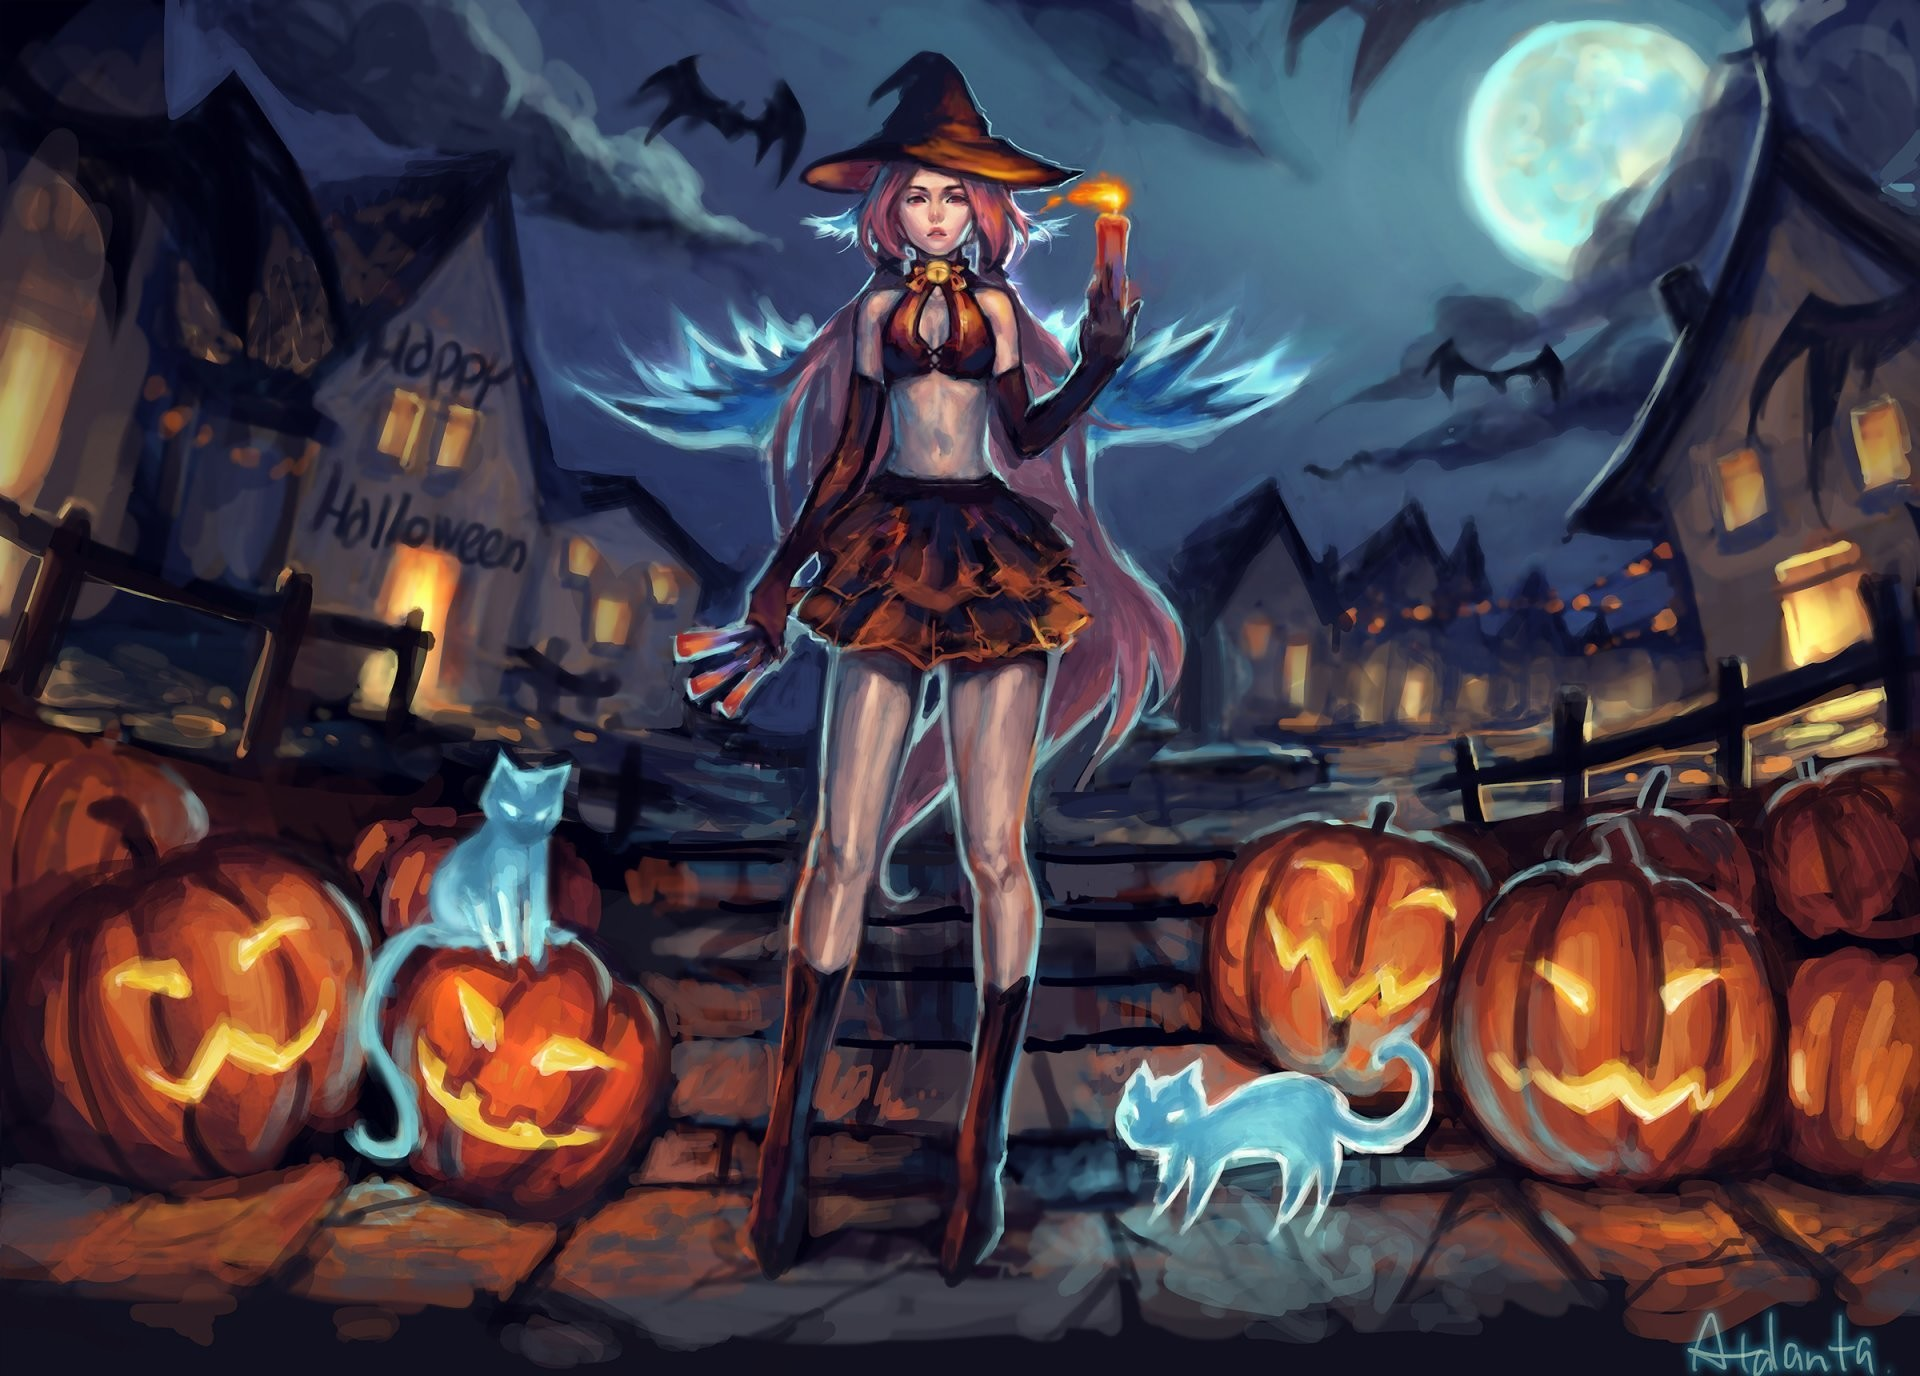 1920x1376 girl velma helluin pumpkin cats halloween